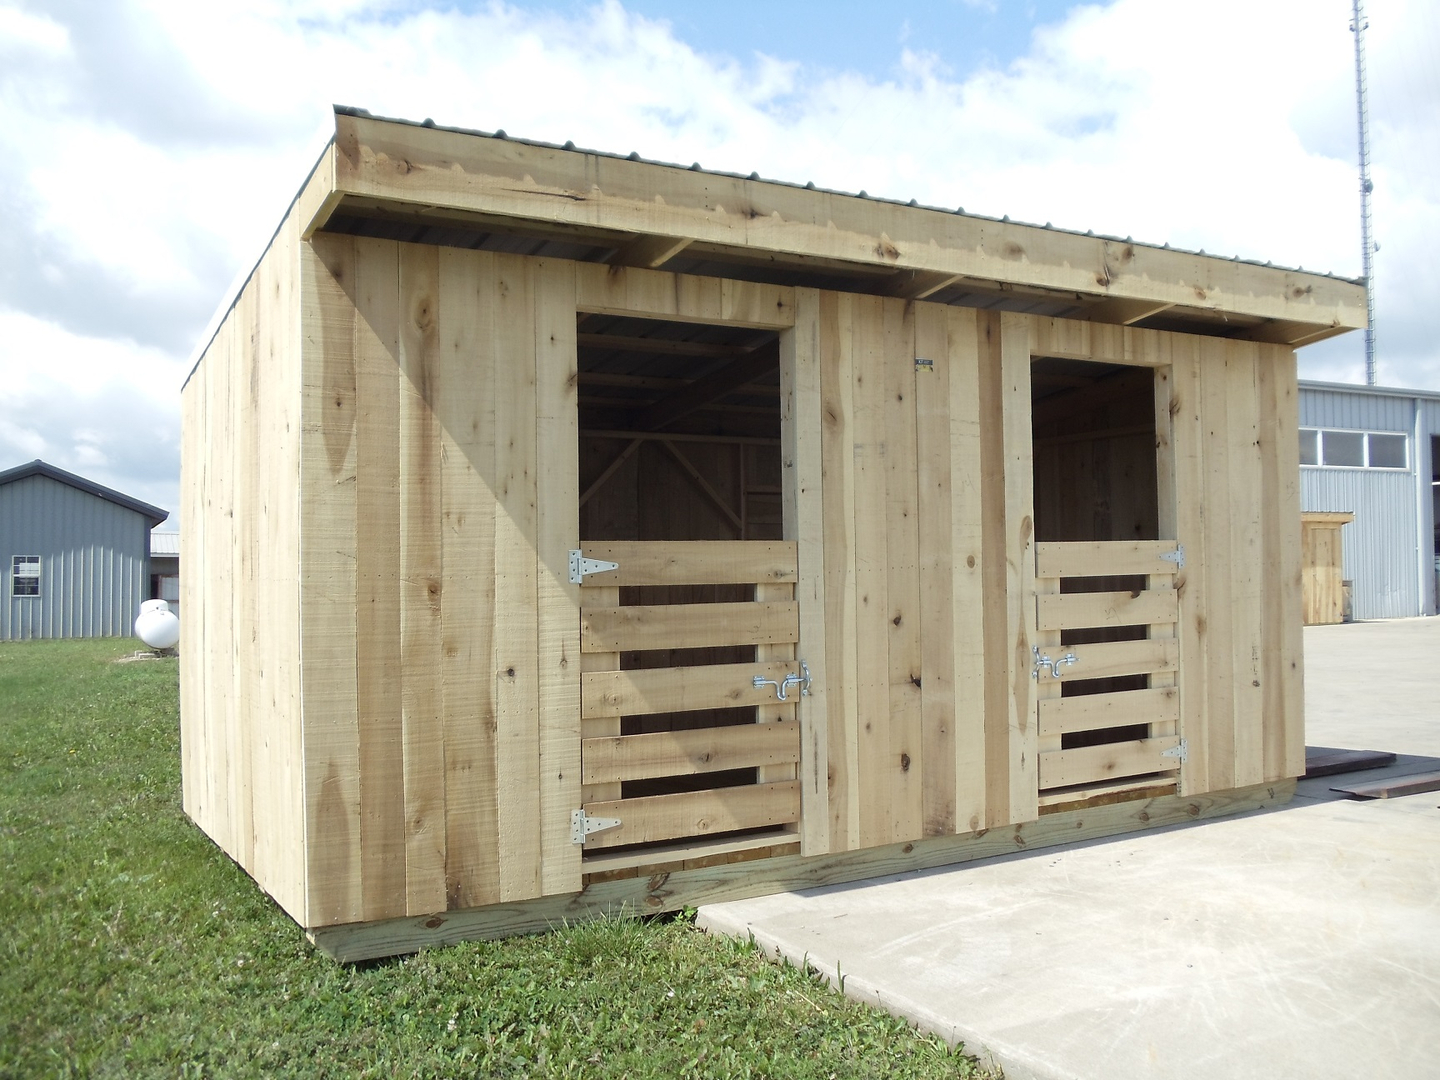 Quality Portable Goat Sheds Our Are Fully Durable Little Shelters And Quite Versatile To Accommodate A Variety Of Different Animals